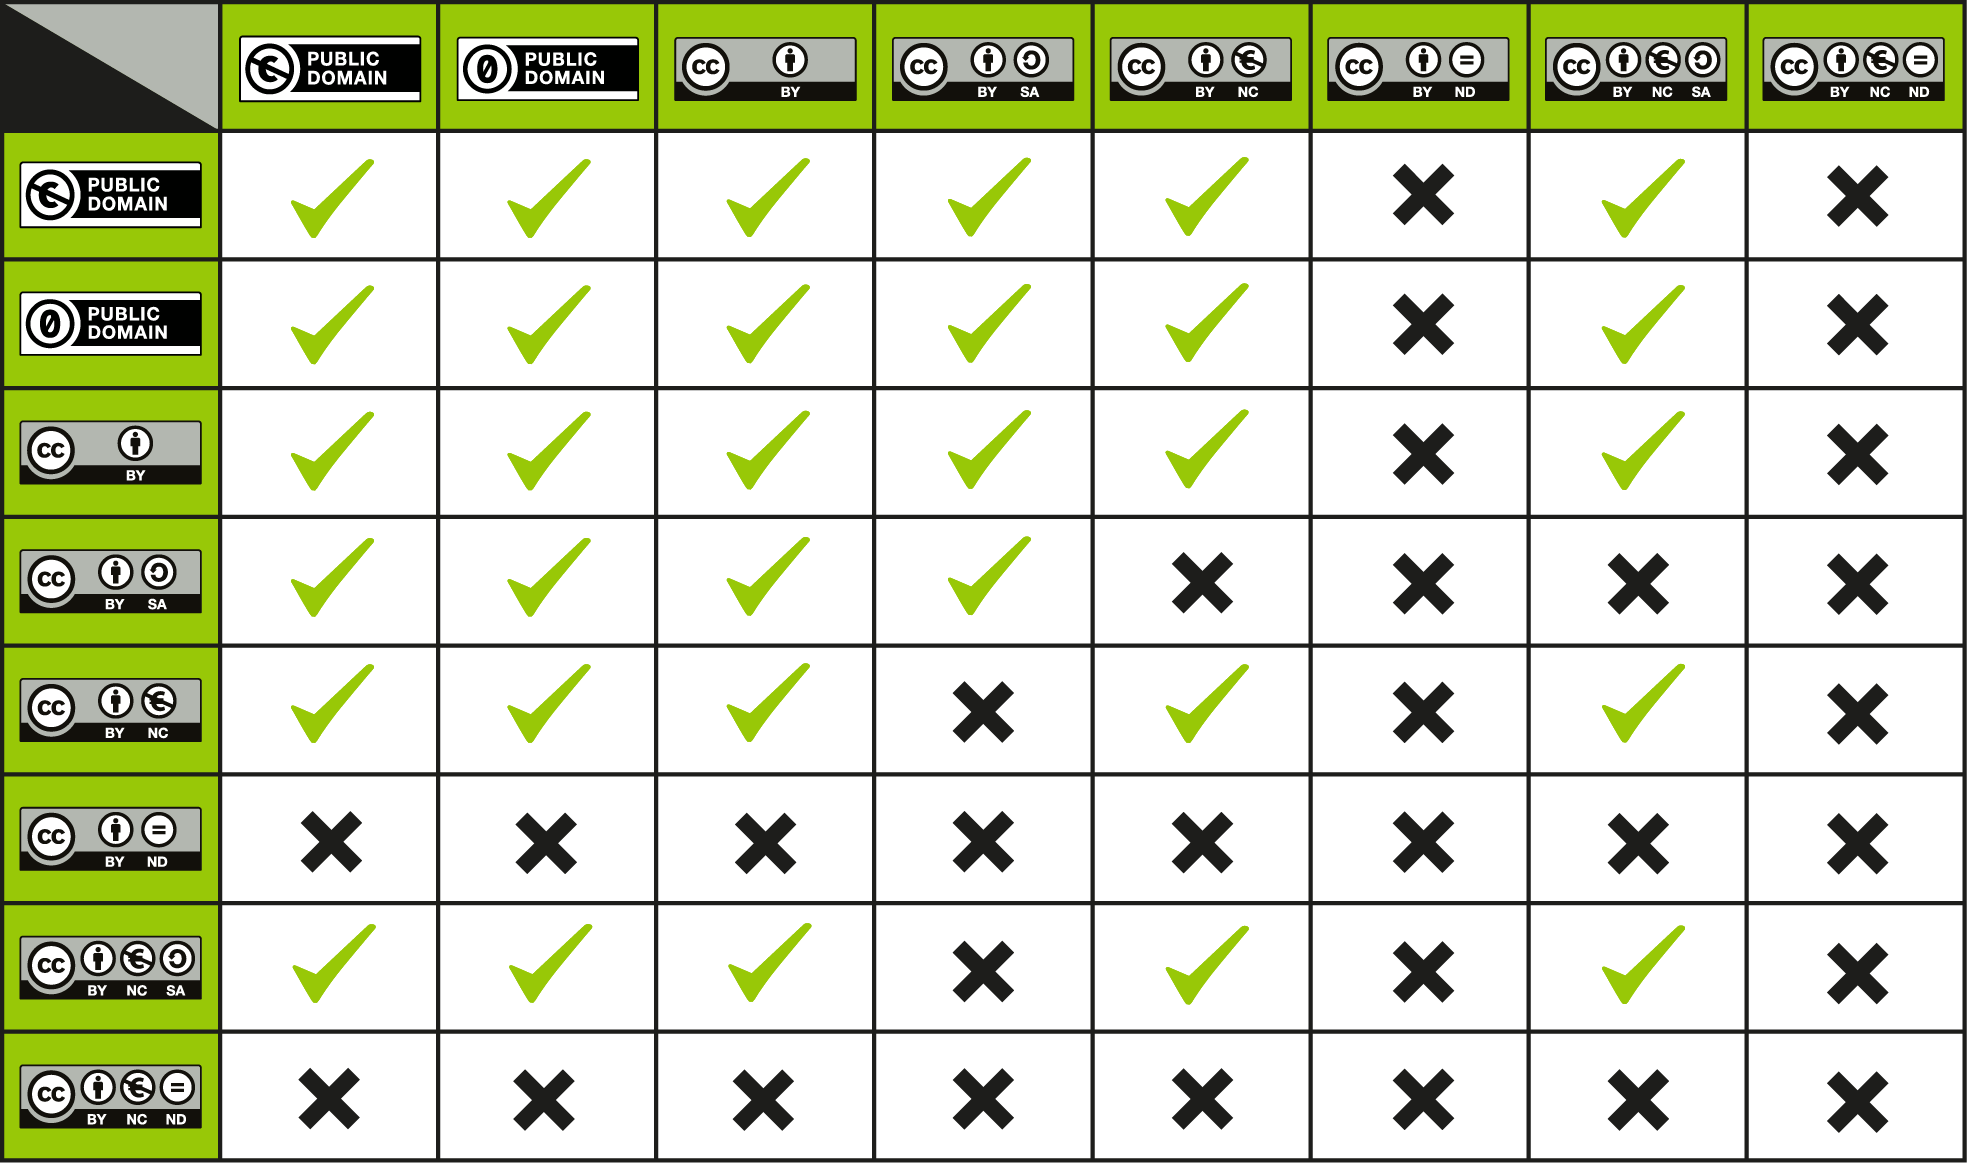 CC_License_Compatibility_Chart.png